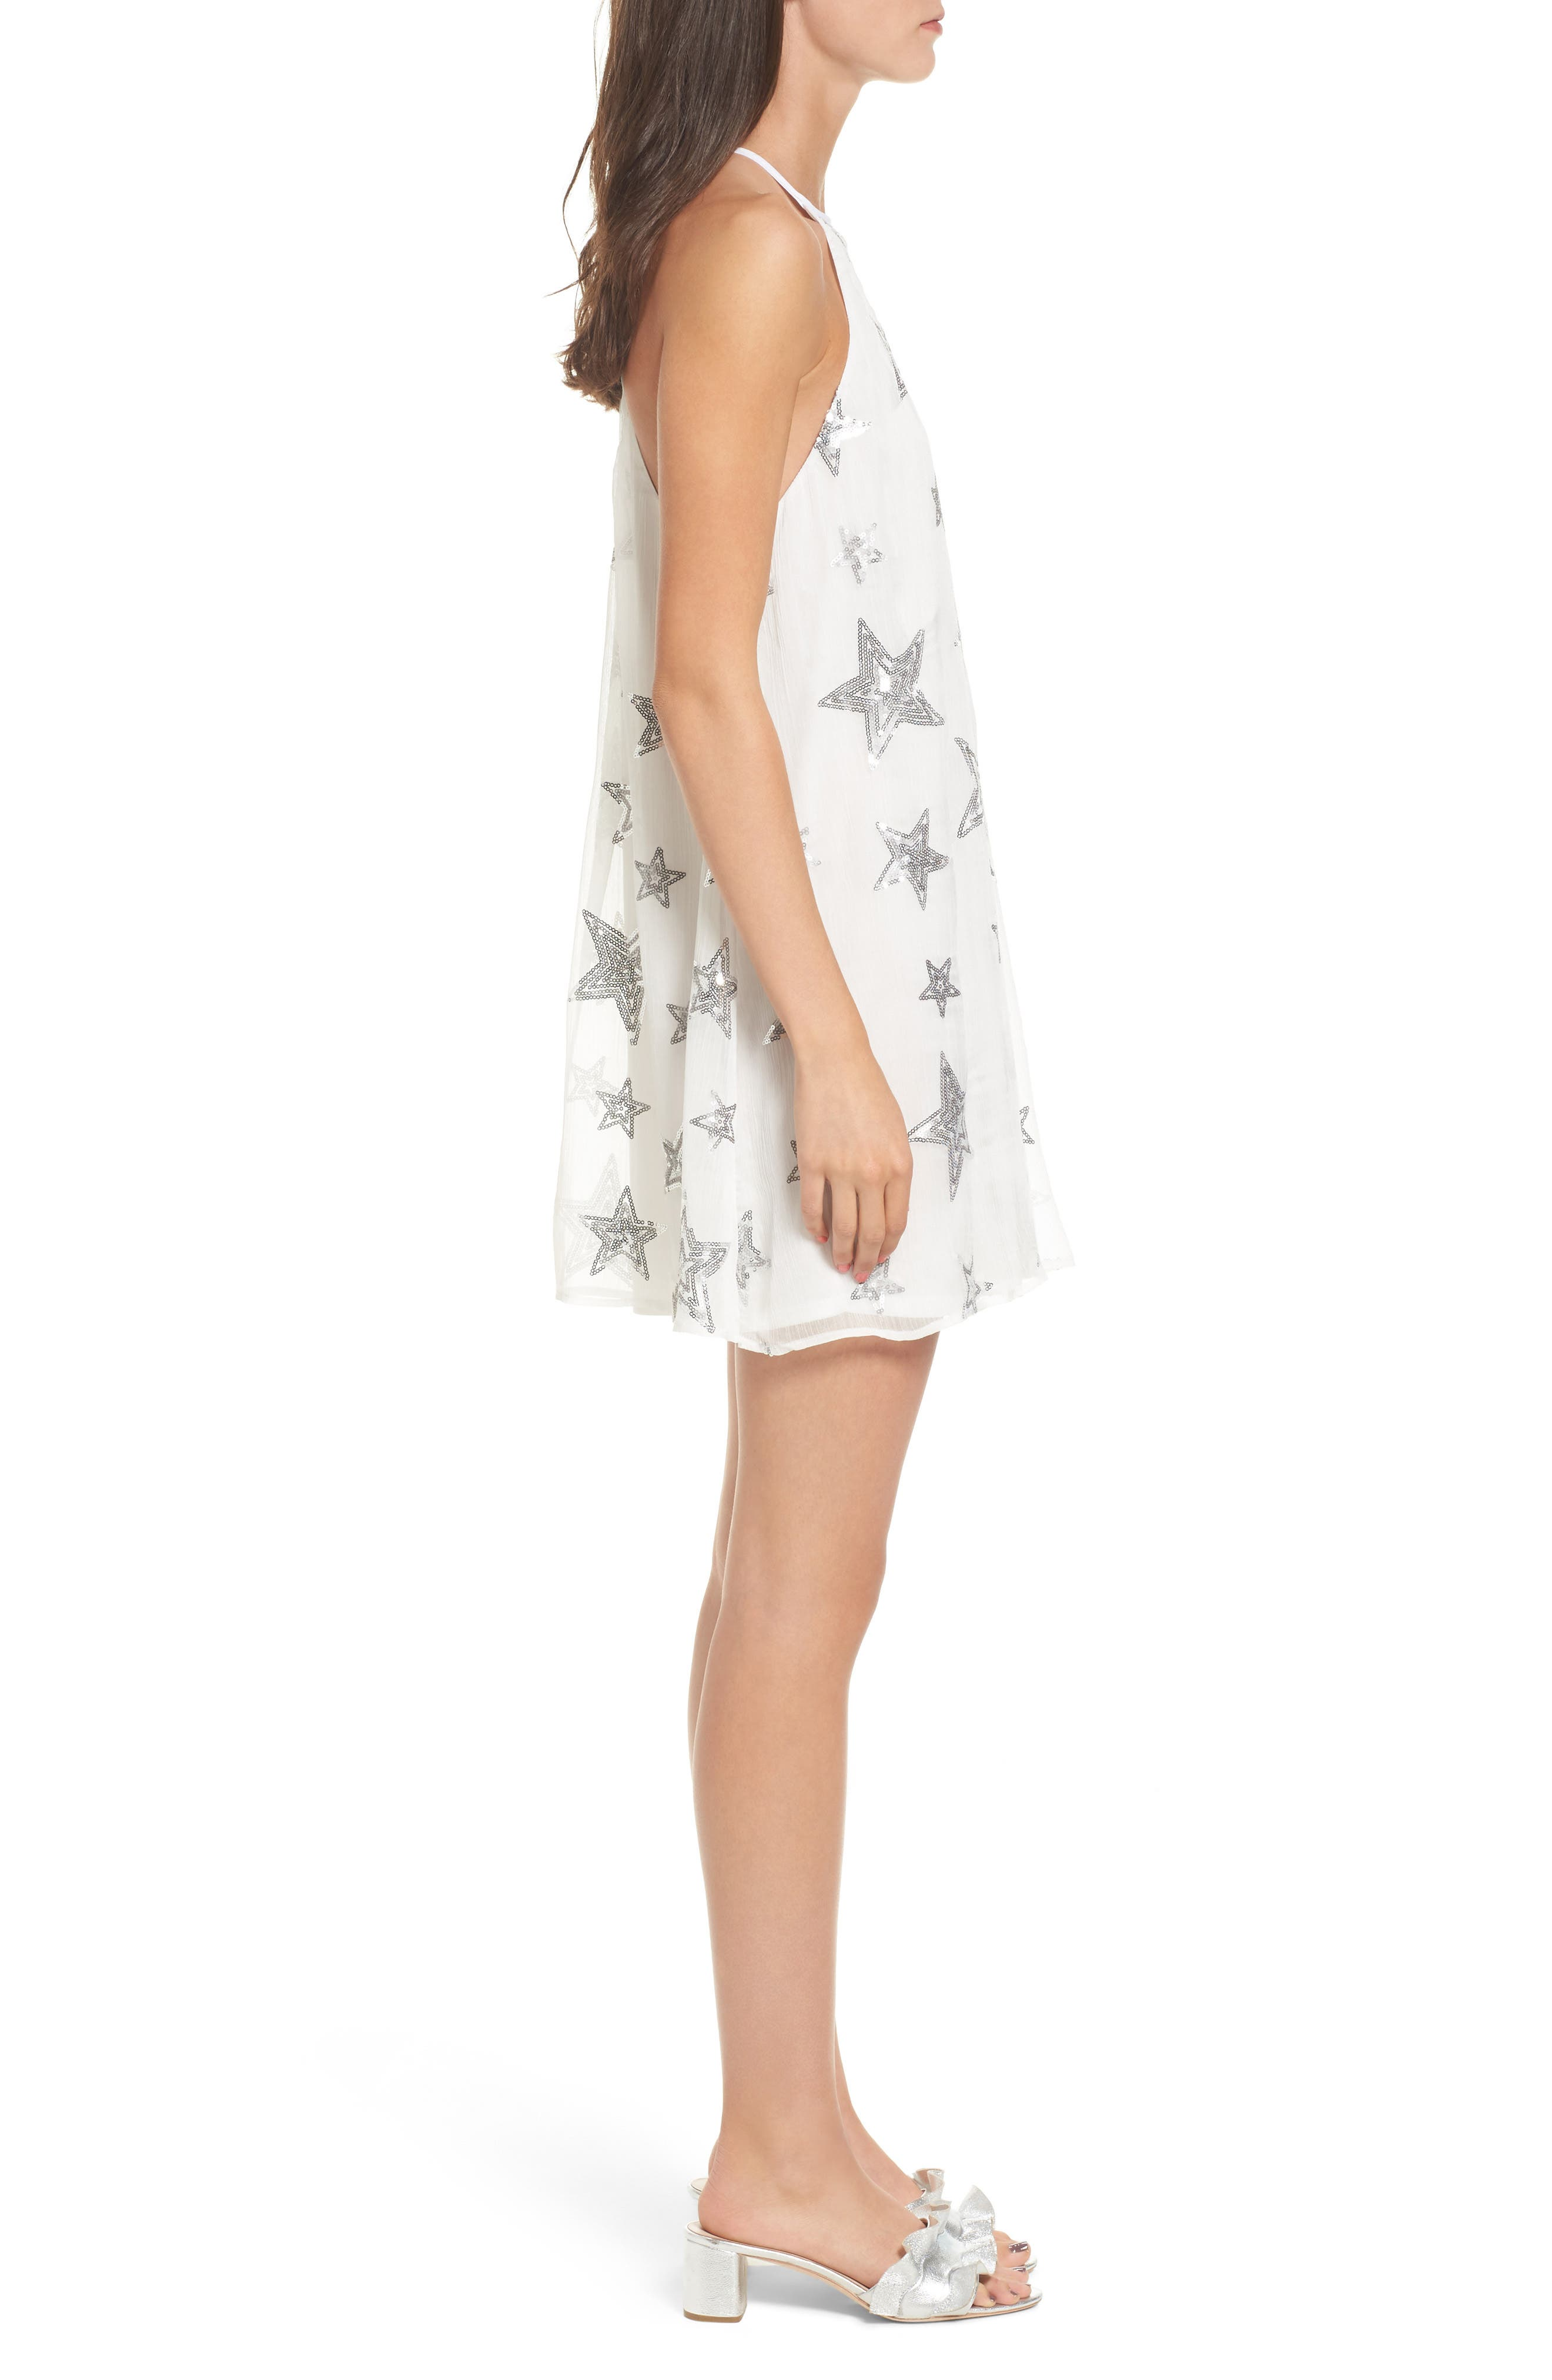 Gomez Embroidered Shift Dress,                             Alternate thumbnail 3, color,                             100